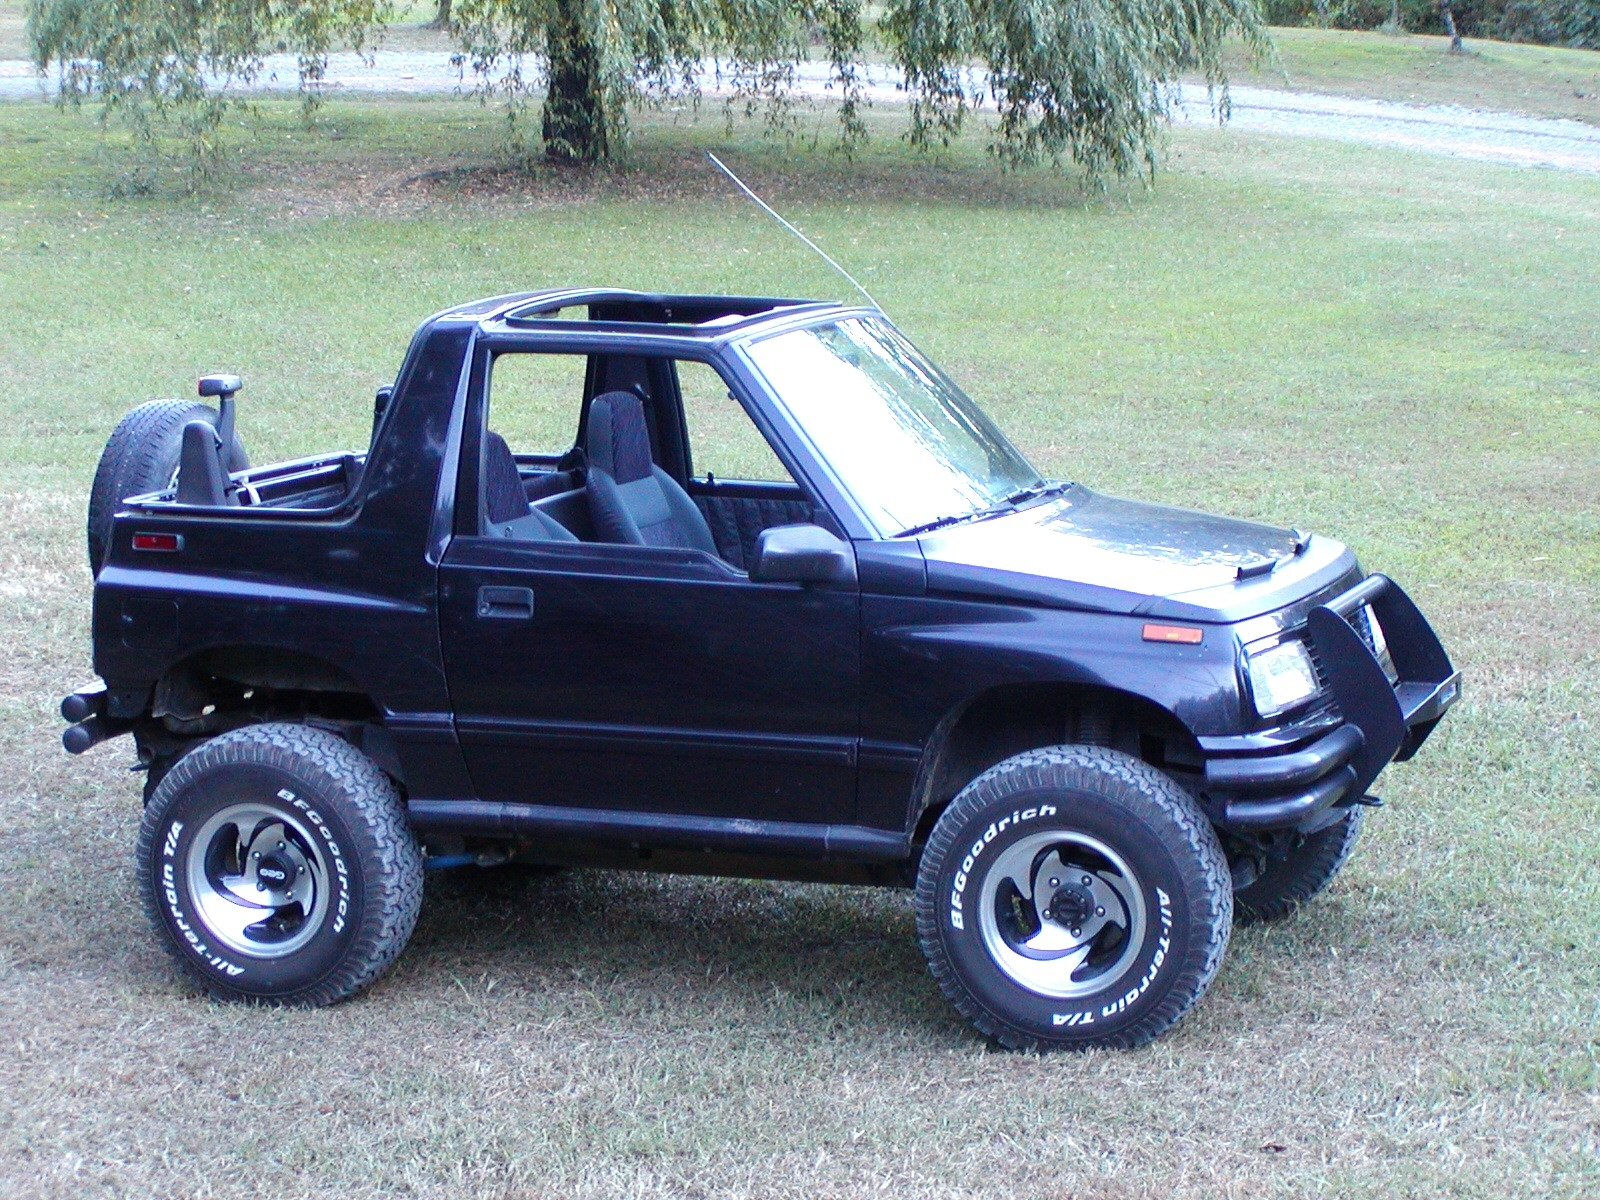 Jeep Jk 2dr 1 Pc also Product info likewise Jeep Jk Hardtop 4dr Slant together with Sj samurai deluxe original km 1989 besides Chevy Tracker 99 2 Pc. on suzuki sidekick hardtop